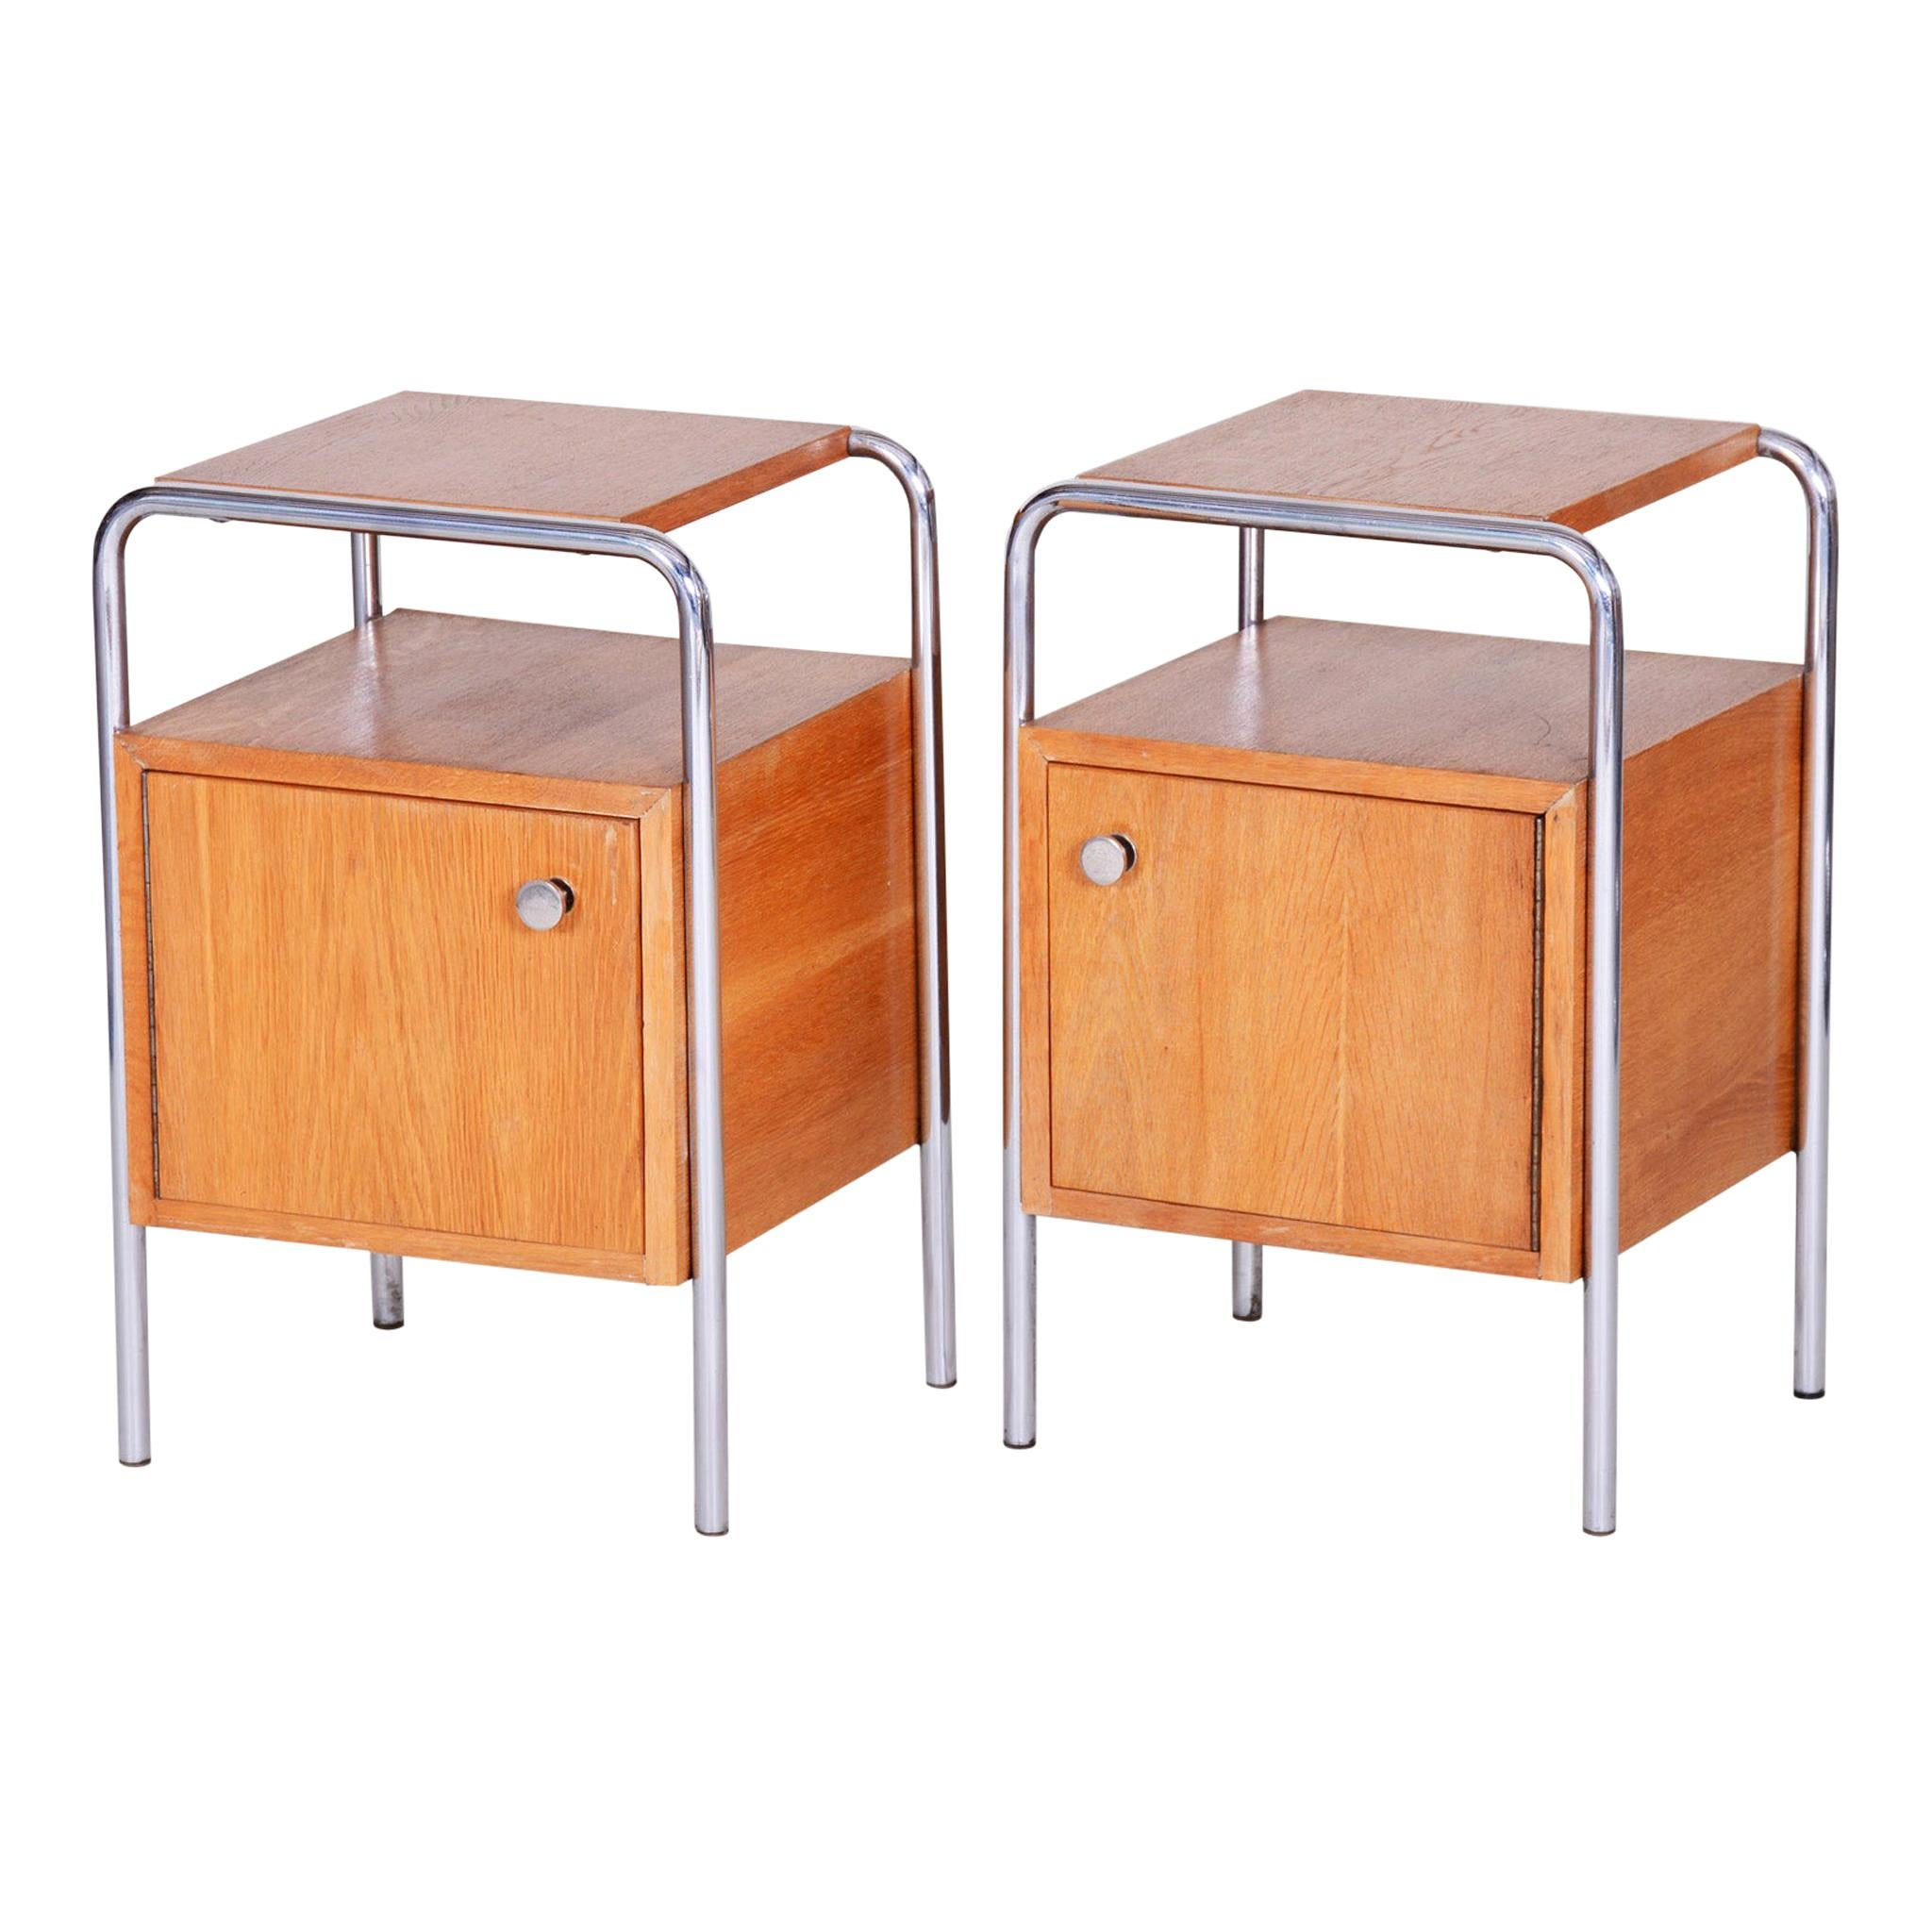 Pair of Oak Bauhaus Bed-Side Tables, Maker Robert Slezak, Czechoslovakia, 1930s